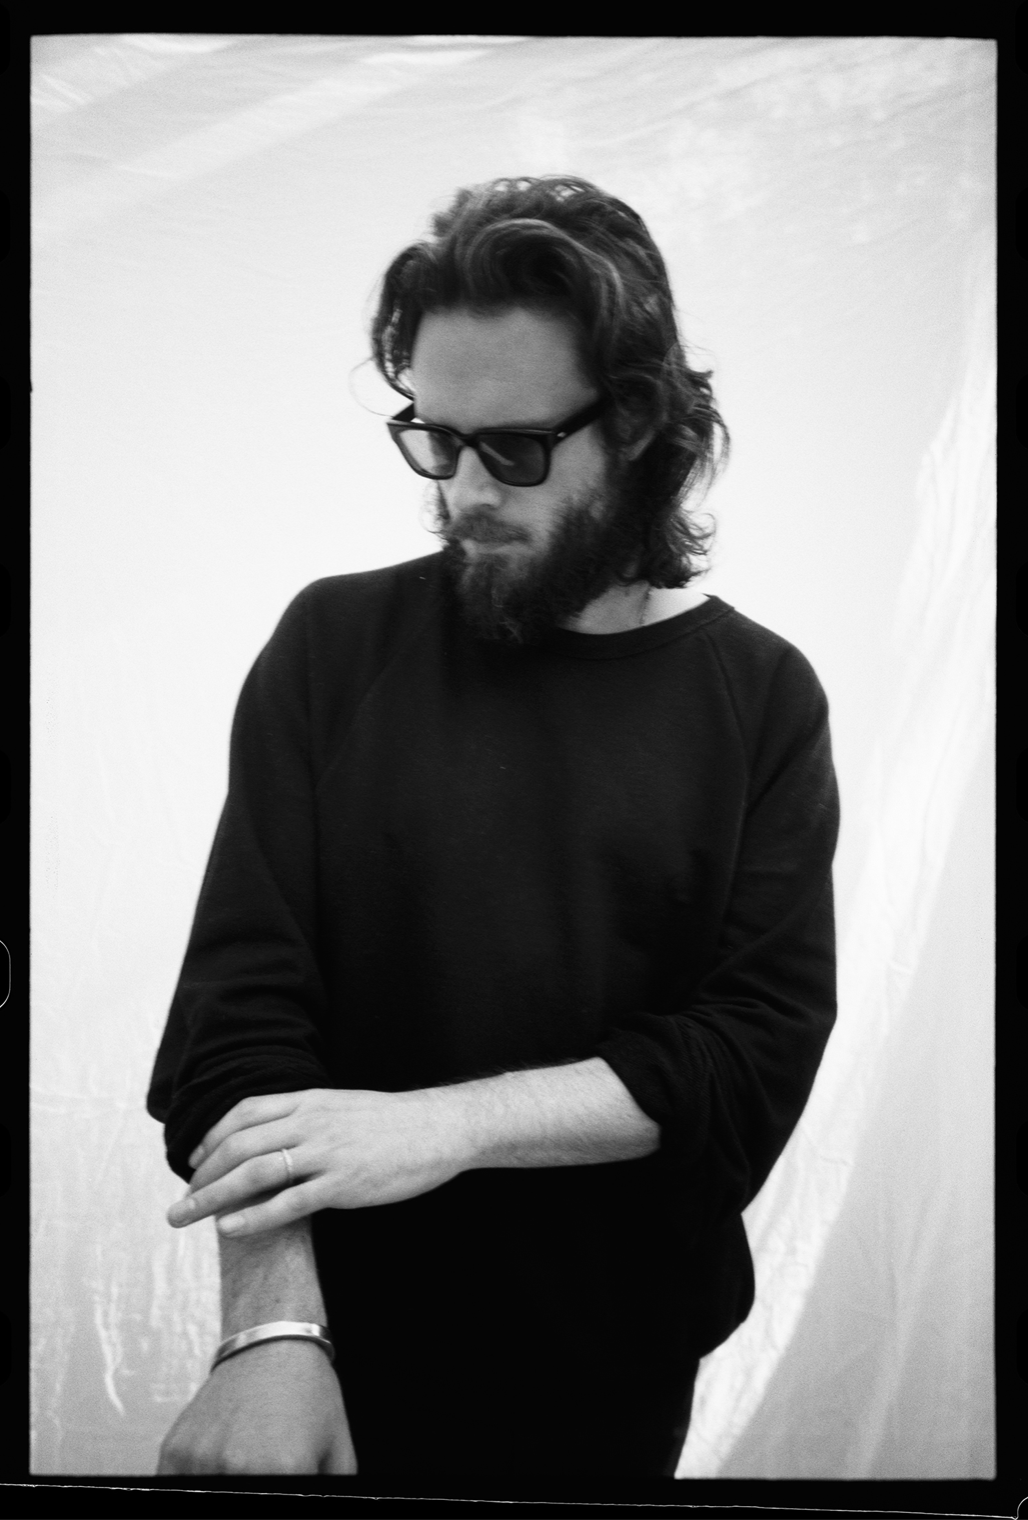 Father John Misty dévoile aujourd'hui deux titres inédits : To S. & To R.